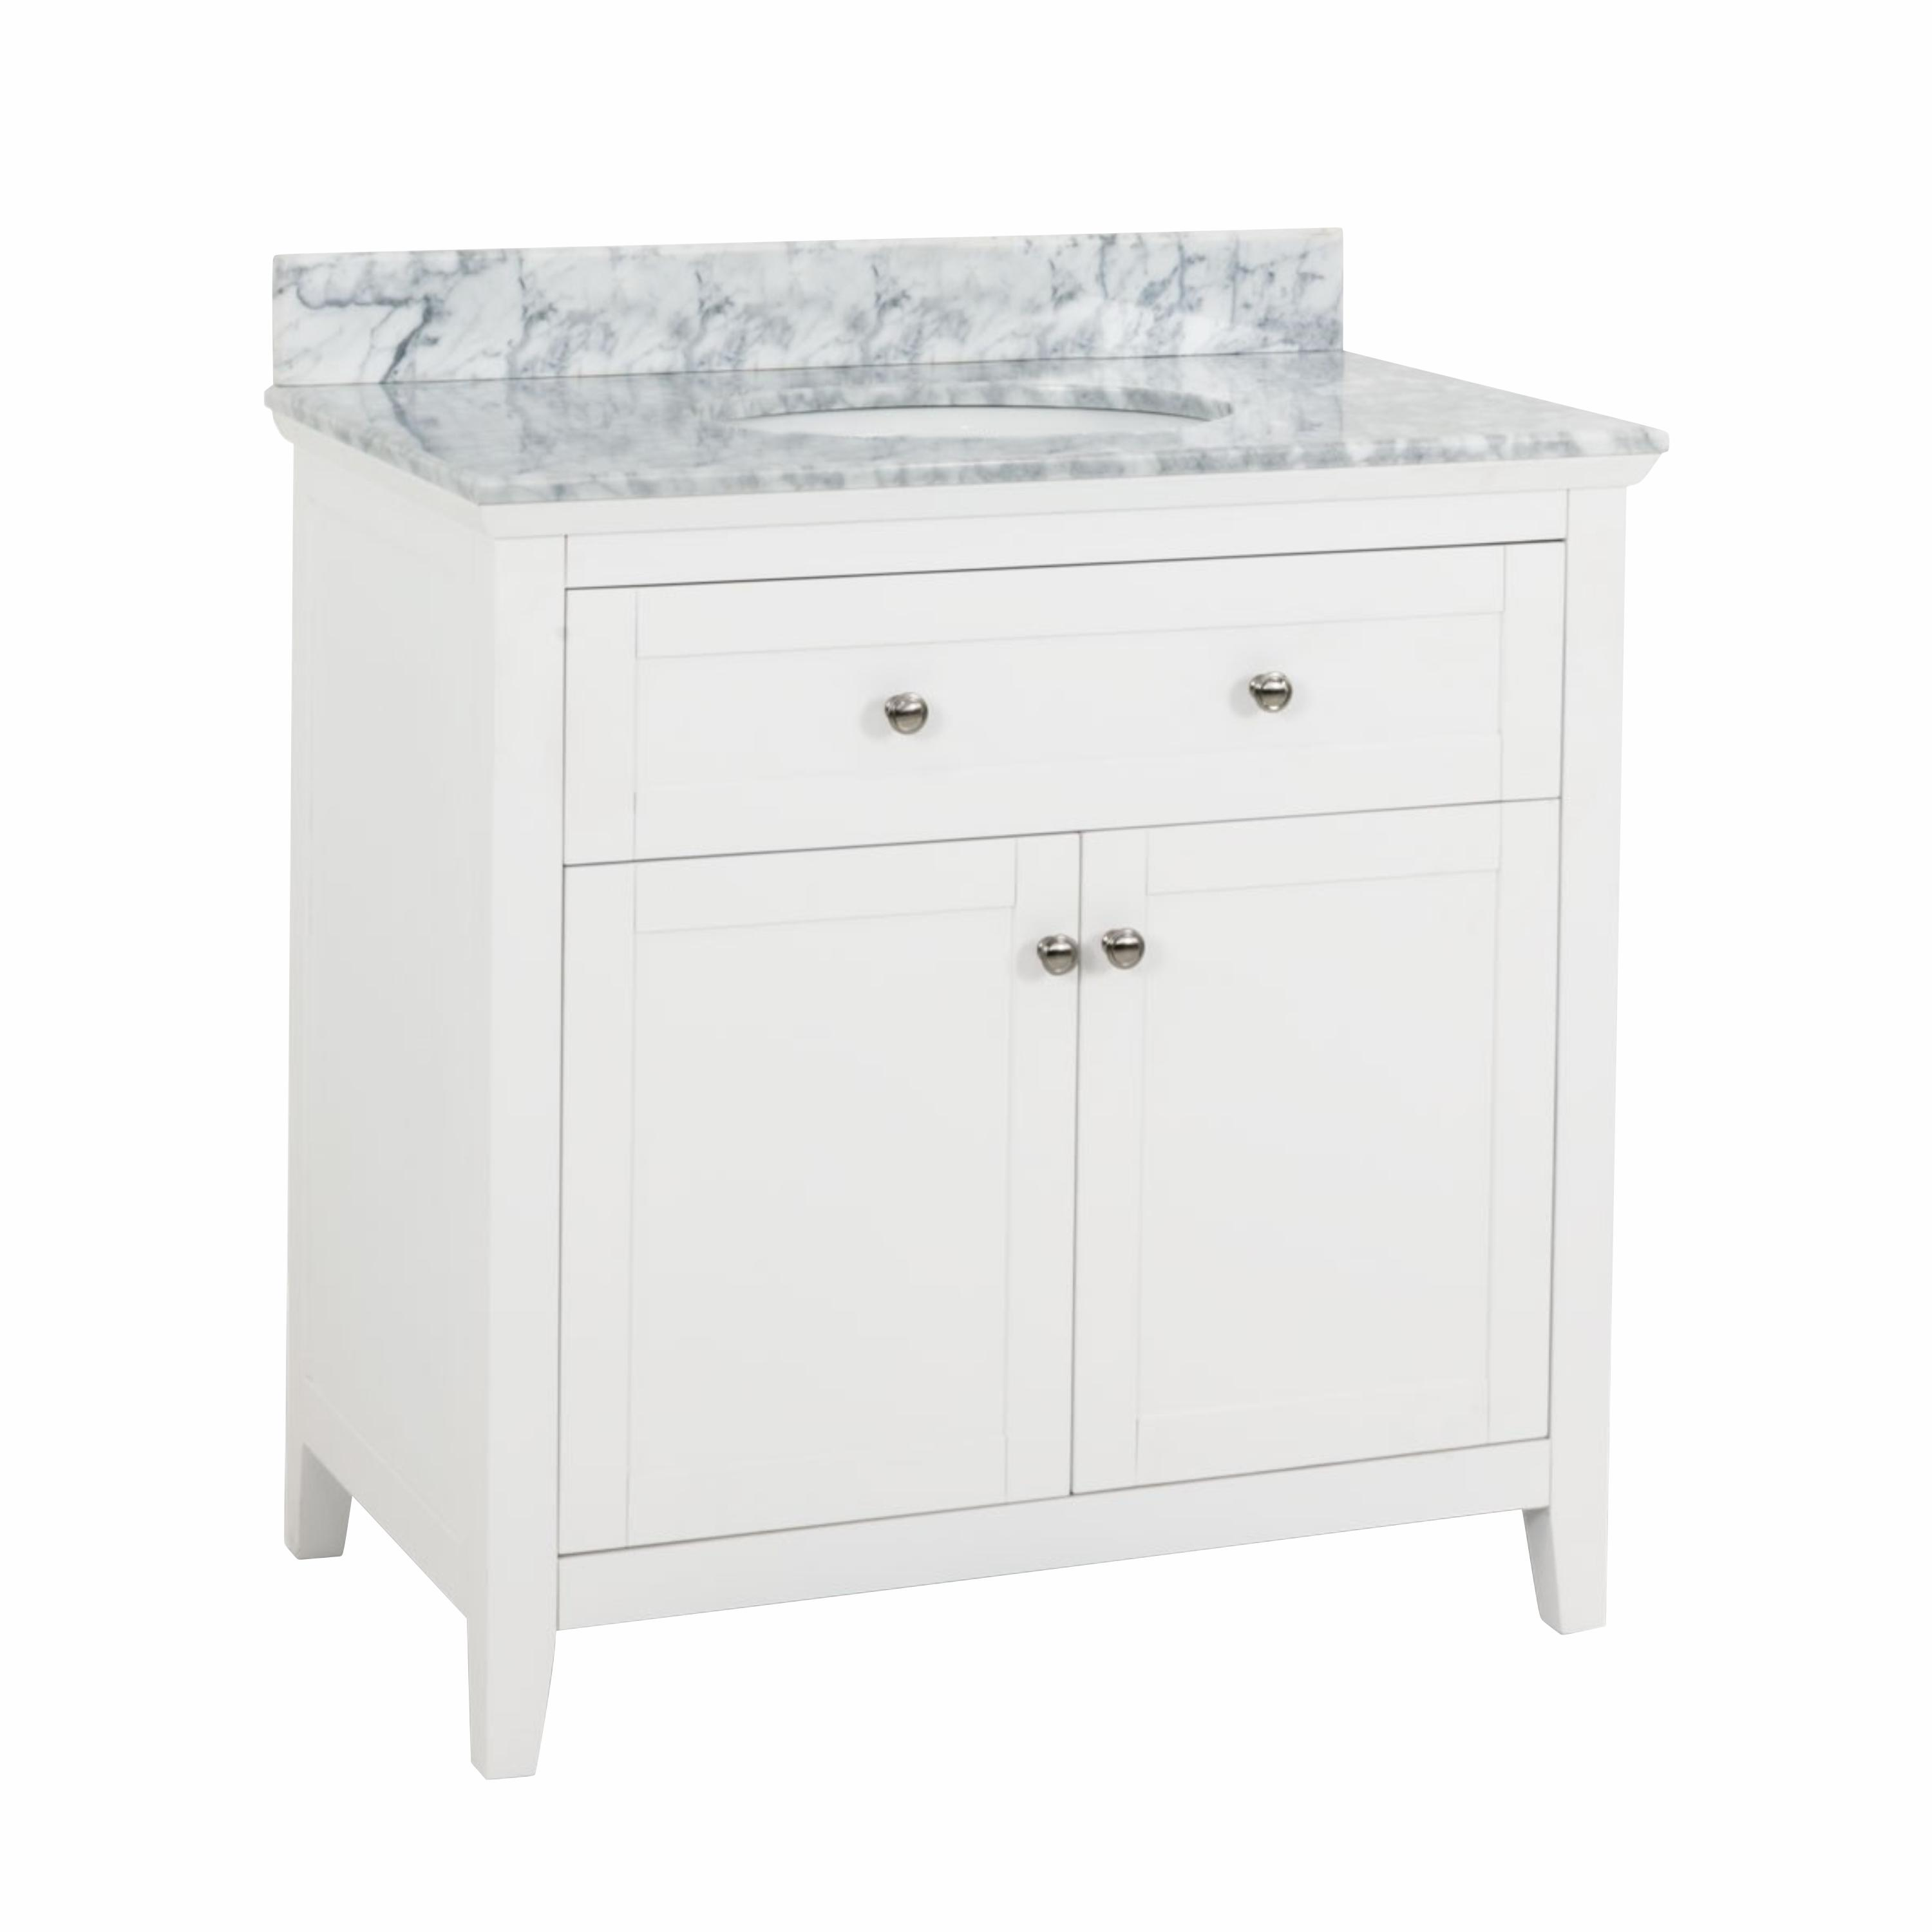 Jeffrey Alexander Chatham Shaker White 36 Bathroom Vanity Cabinet With Carrera Marble Countertop And Sink Bowl